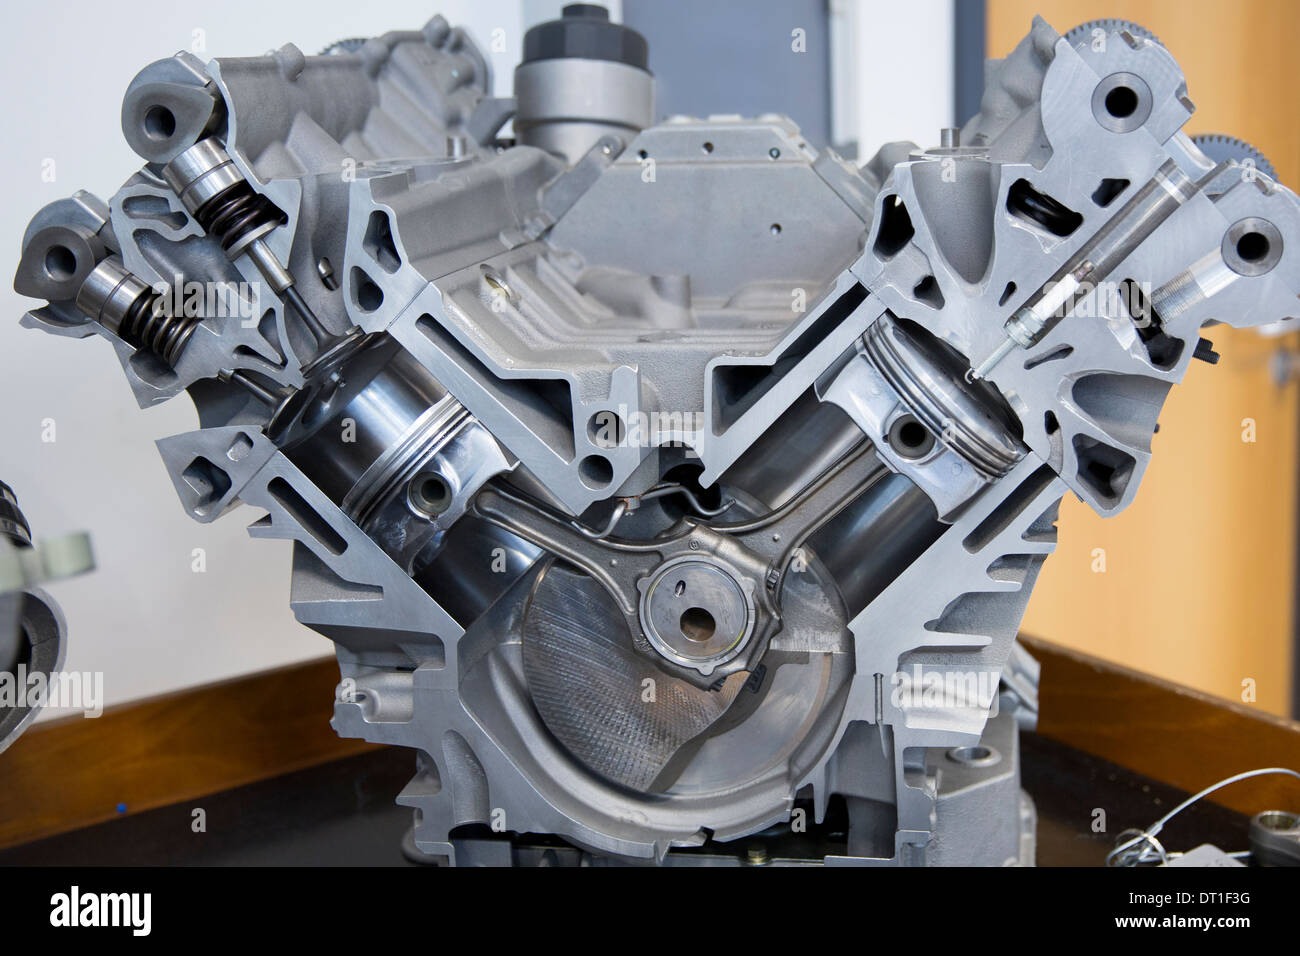 Mercedes Amg Engine Production Factory In Affalterbach In Germany Dt F G